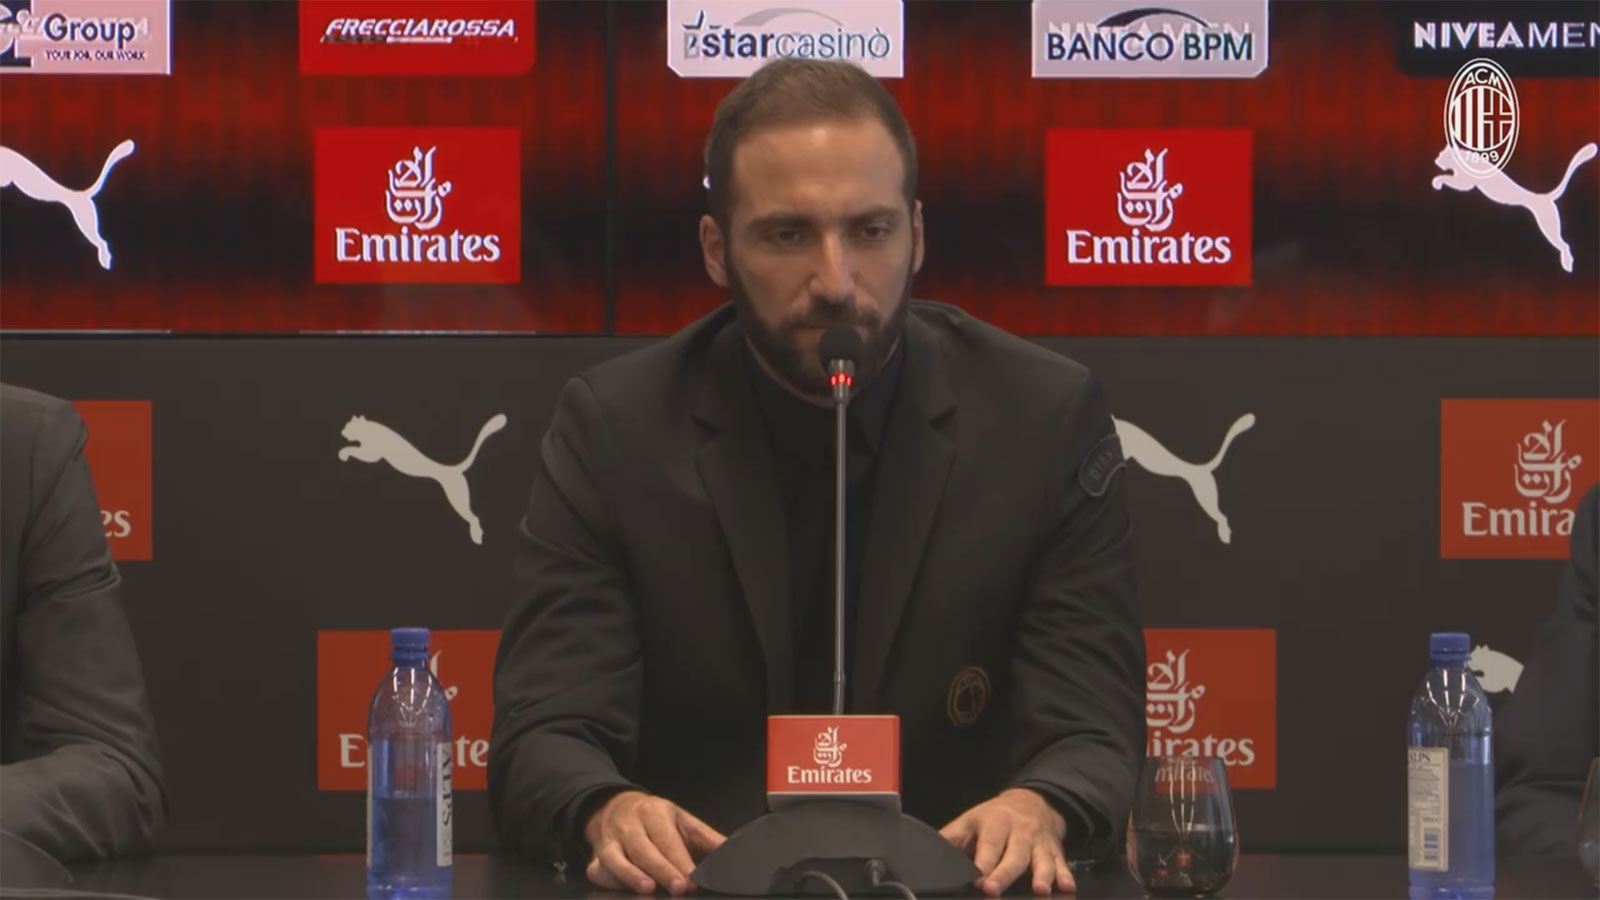 Higuain The fans deserve to see Milan back at the very